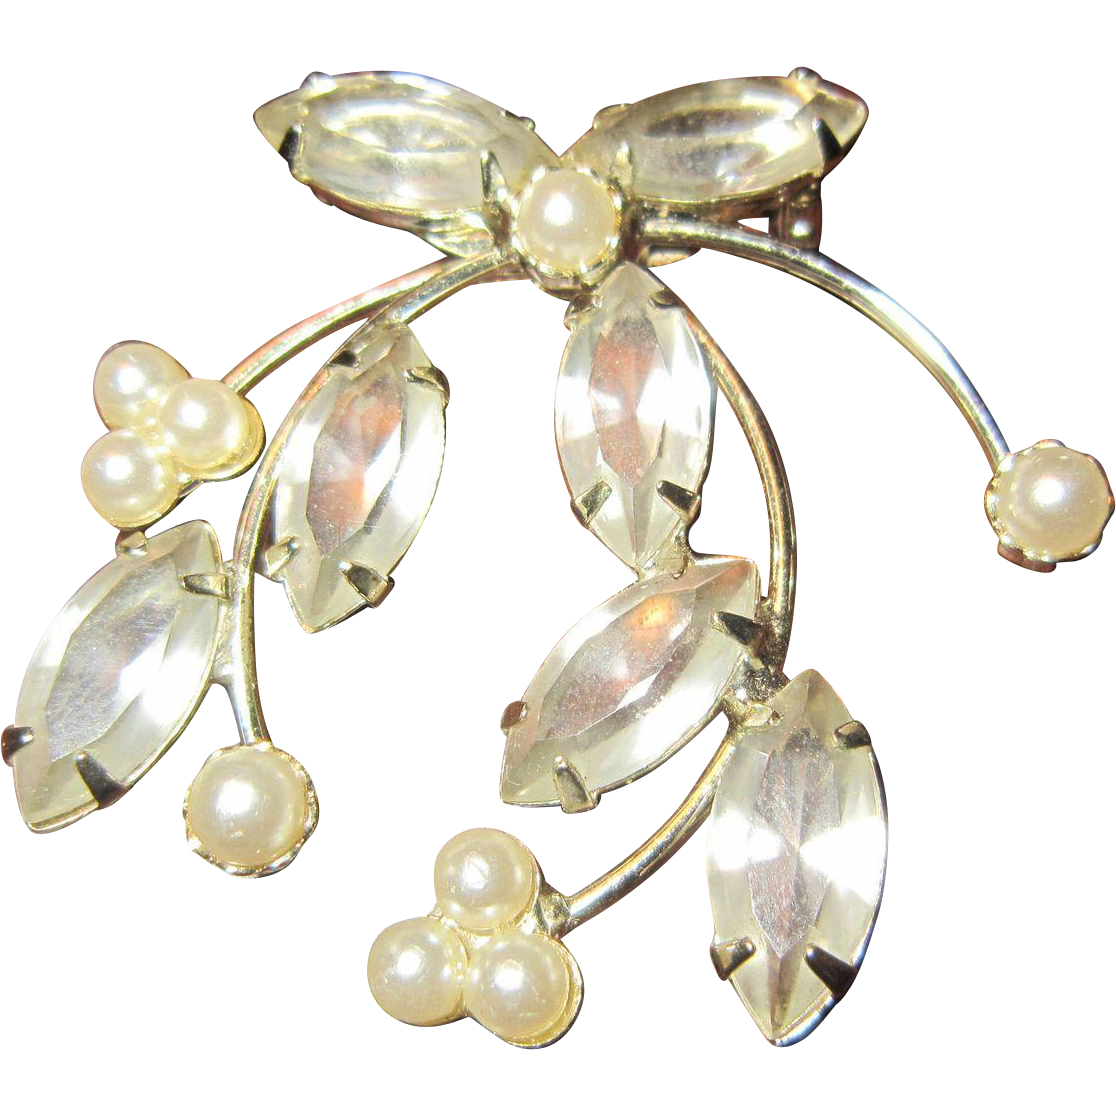 Trifari Mistletoe Brooch with Clear Rhinestones, Faux Pearls and Silver Tone Metal